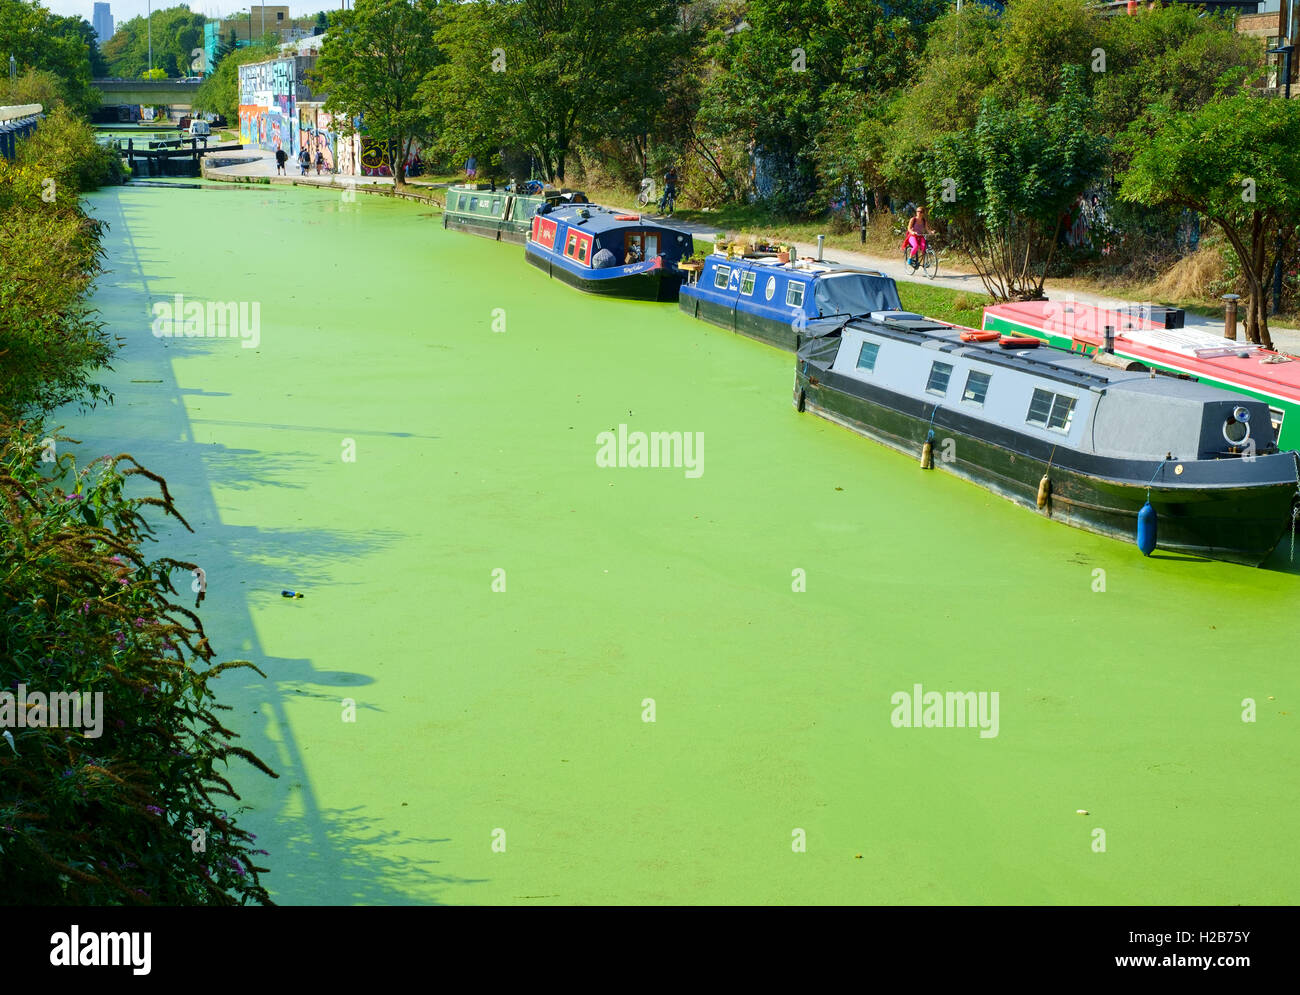 Hertford Union Canal at Hackney Wick in East London is turned bright green by an overgrowth of duckweed - Stock Image